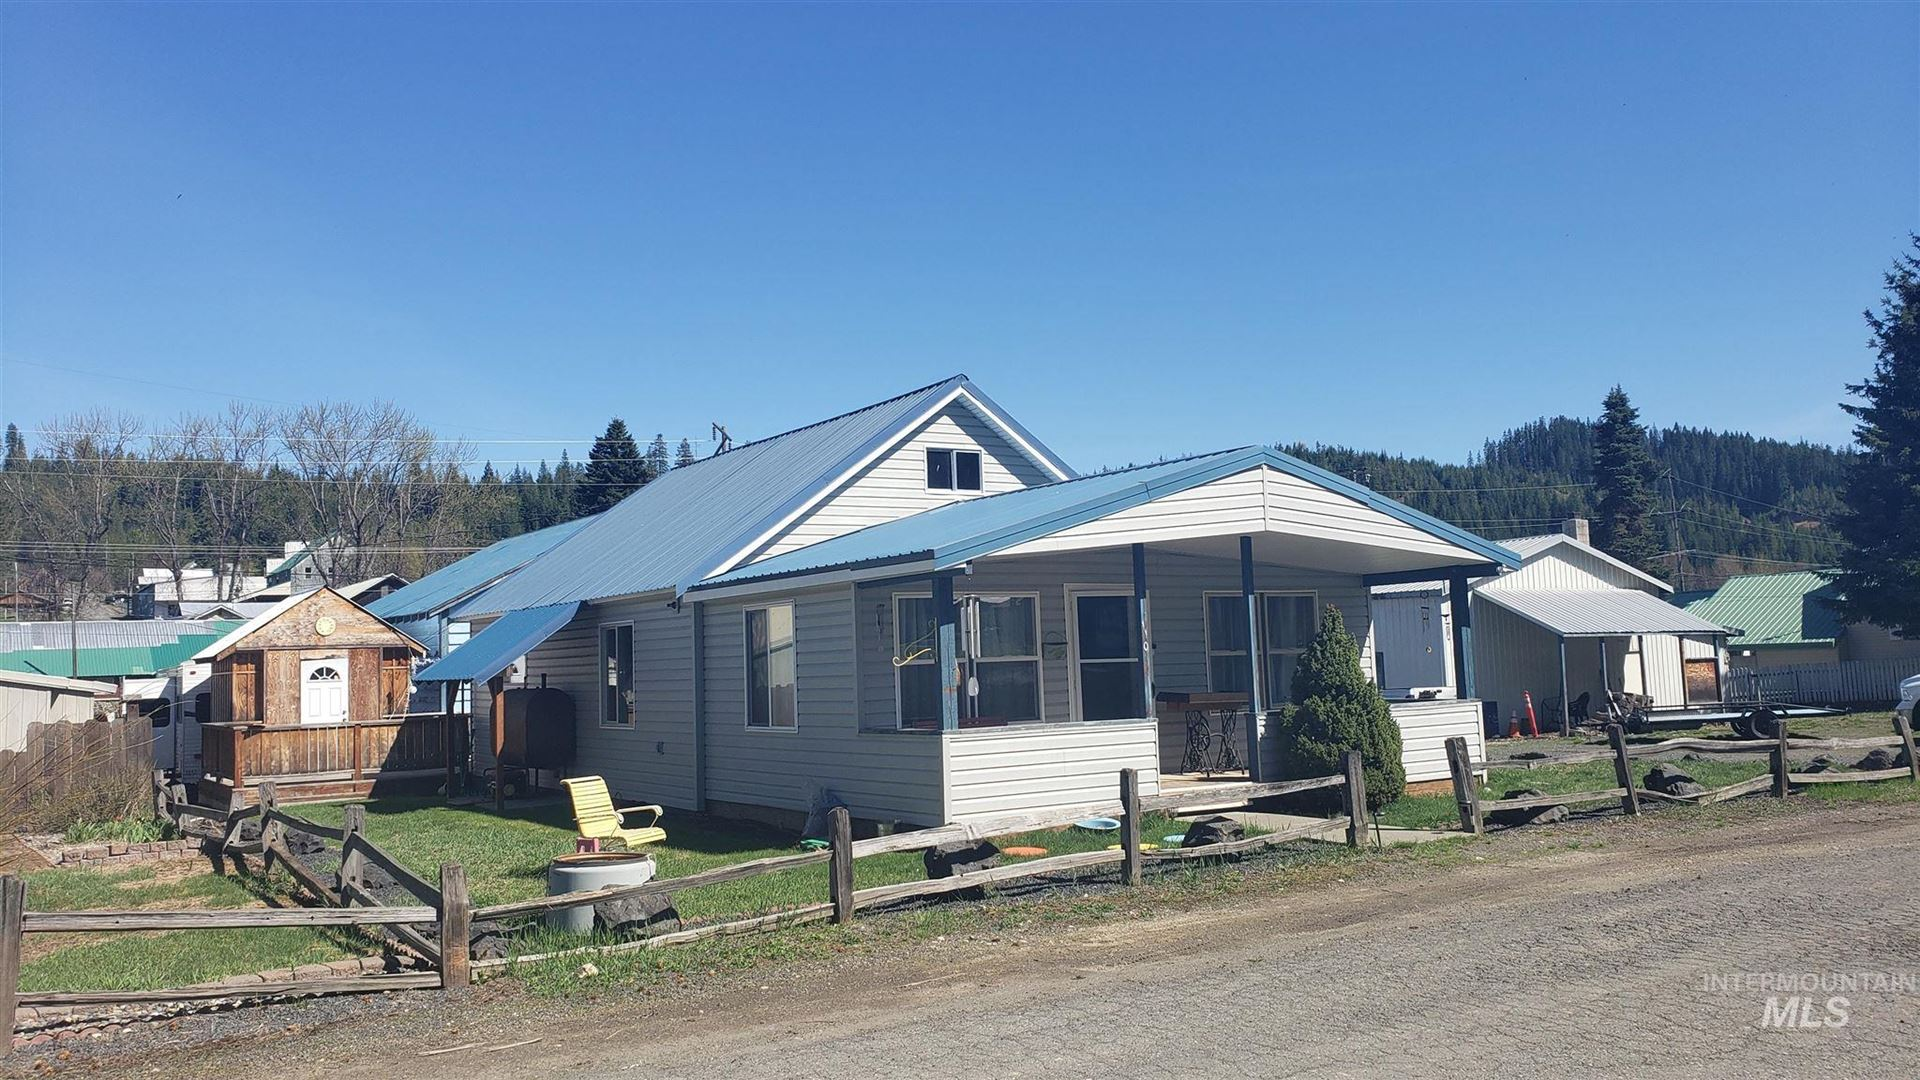 Photo of 110 South 2nd Ave, Pierce, ID 83546 (MLS # 98802220)